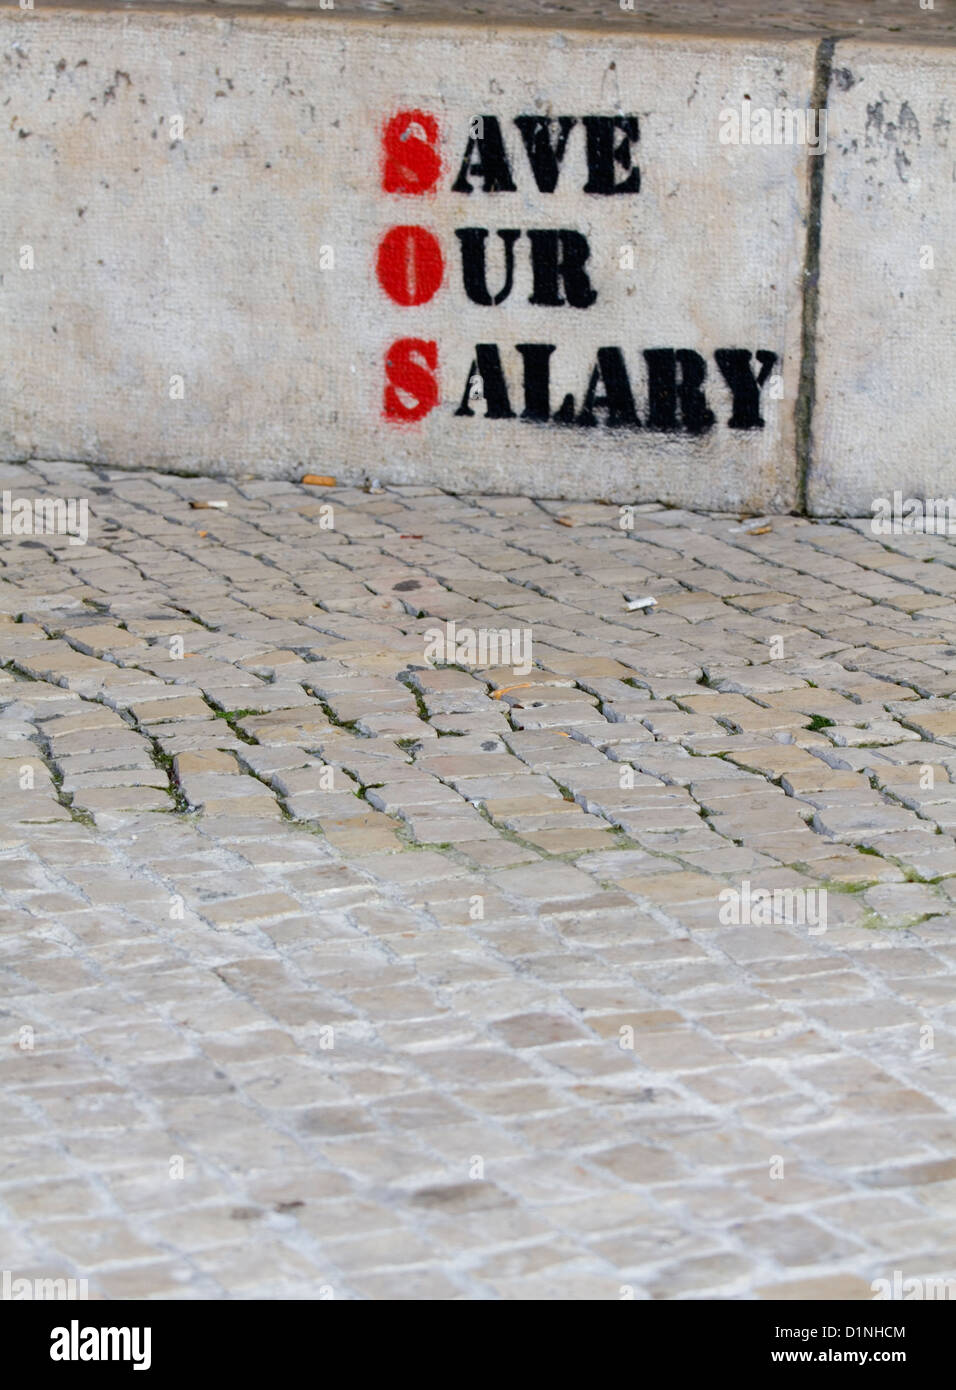 Graffiti in Lisbon Portugal SOS Save Our Salary referring to the economic Eurozone crisis - Stock Image